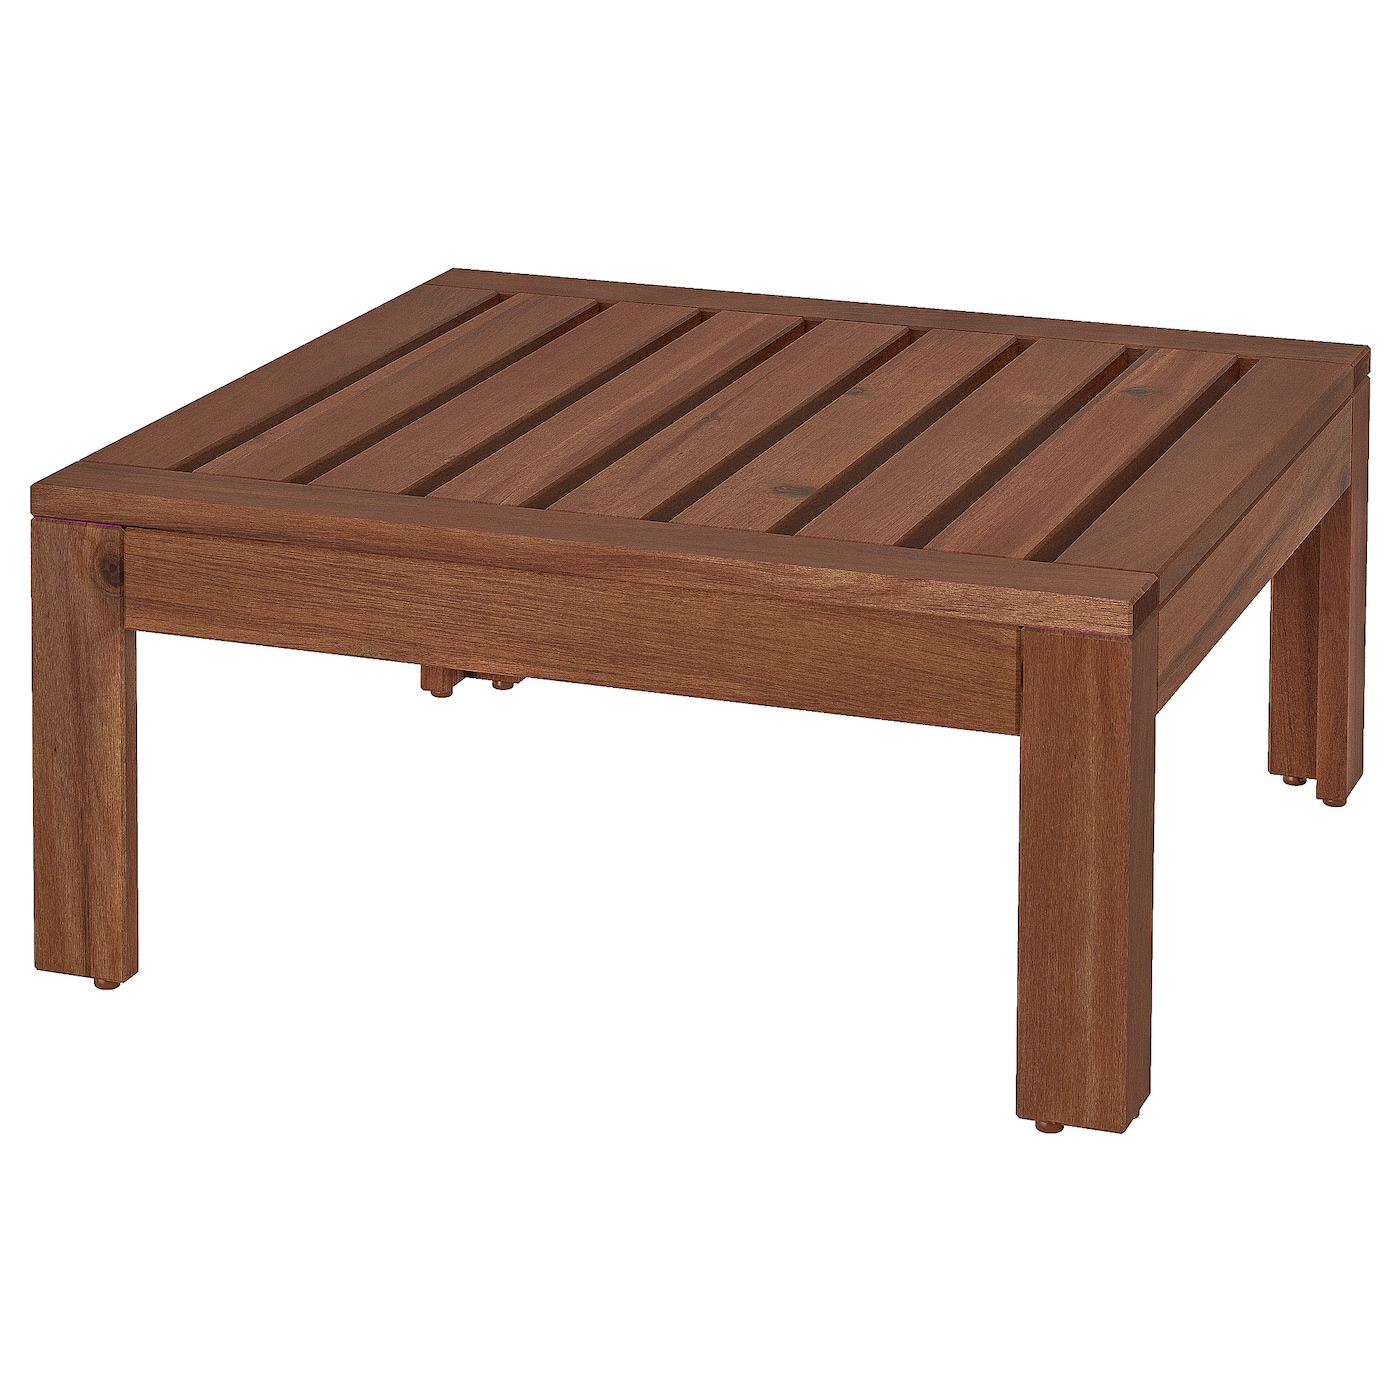 ÄPPLARÖ Table/stool section, outdoor - brown stained brown 11x11 cm